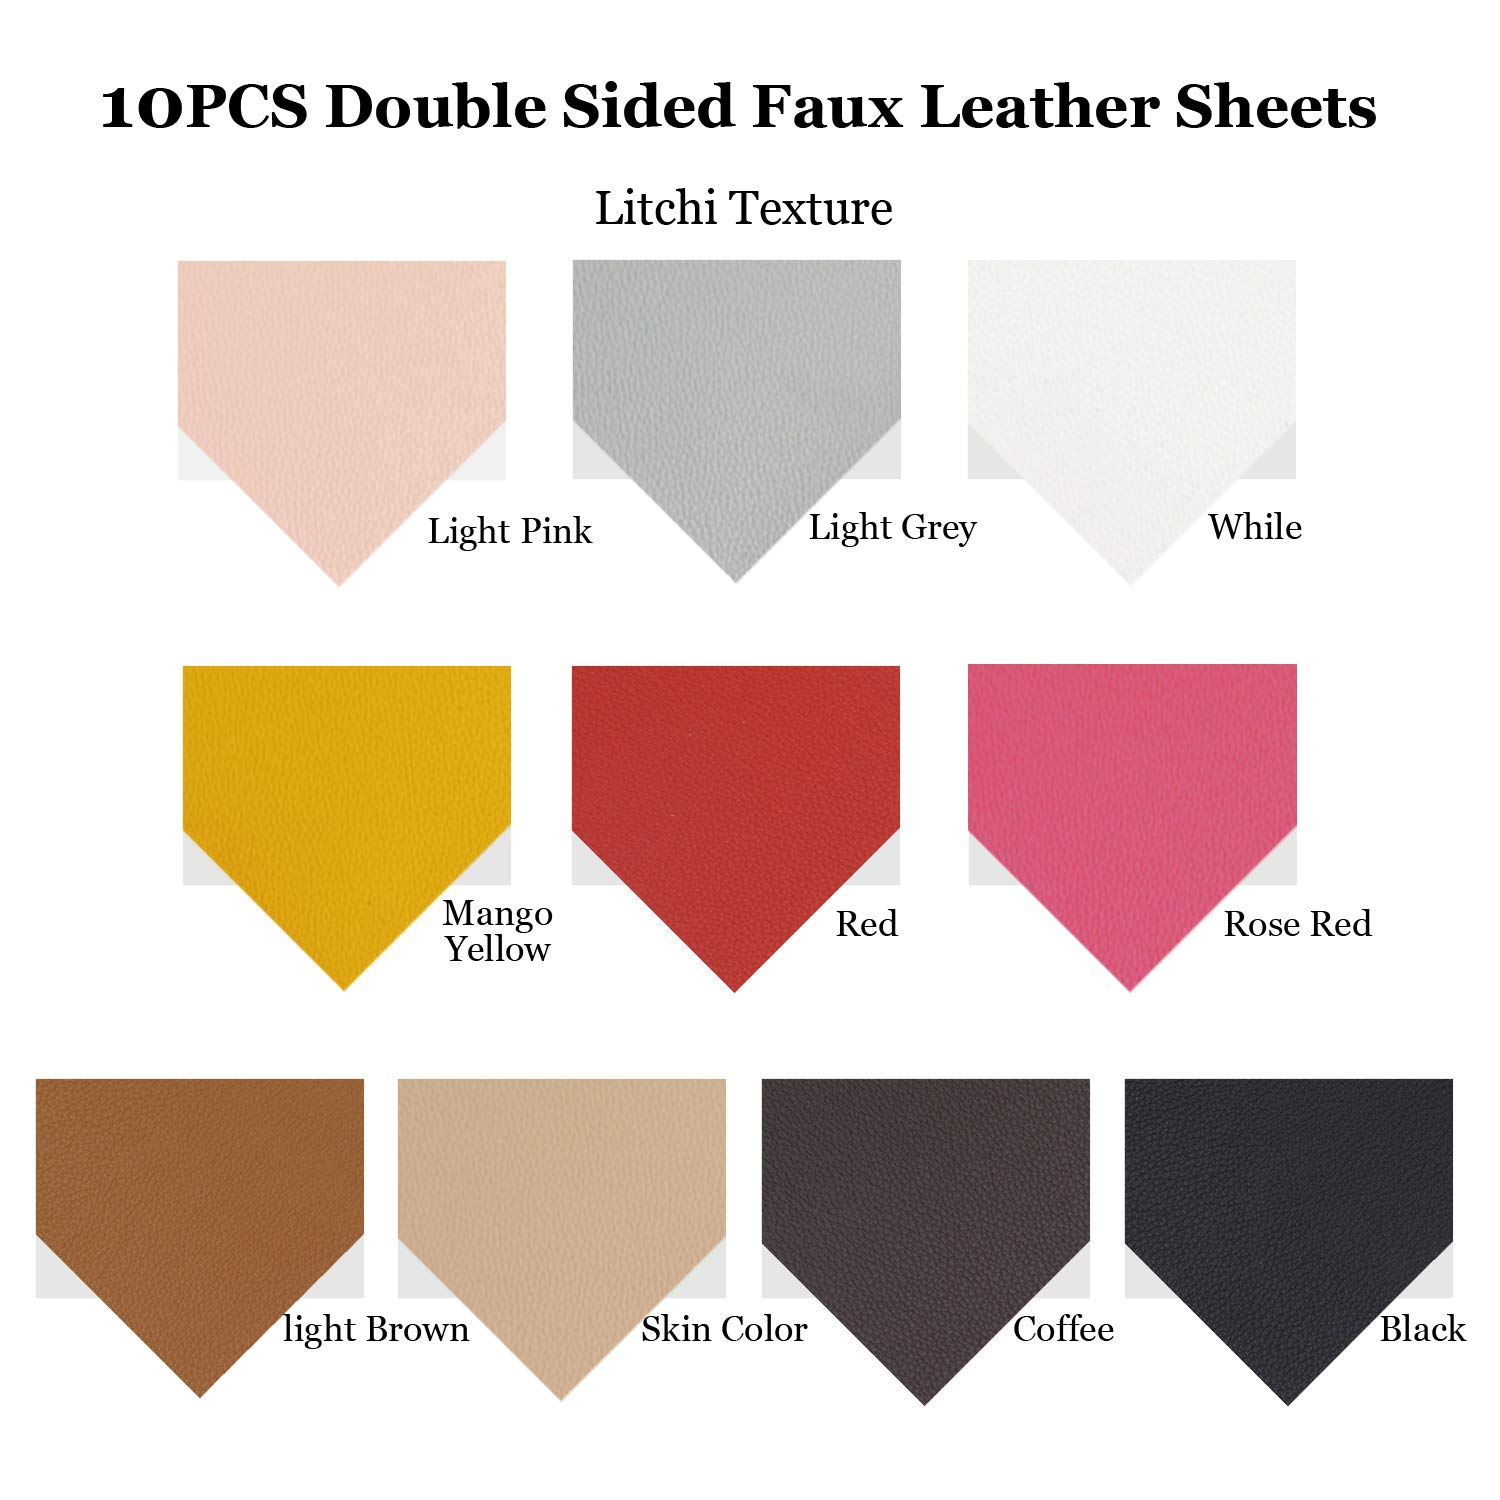 10pcs Metallic Faux Leather Sheets + 10pcs Double Sided Litchi Synthetic Leather Fabric Sheets(6''x 6'') with 140pcs Earring Hooks, 140pcs Jump Rings, Pliers and Cut Molds for Earring Making Crafts by SIMPZIA (Image #3)